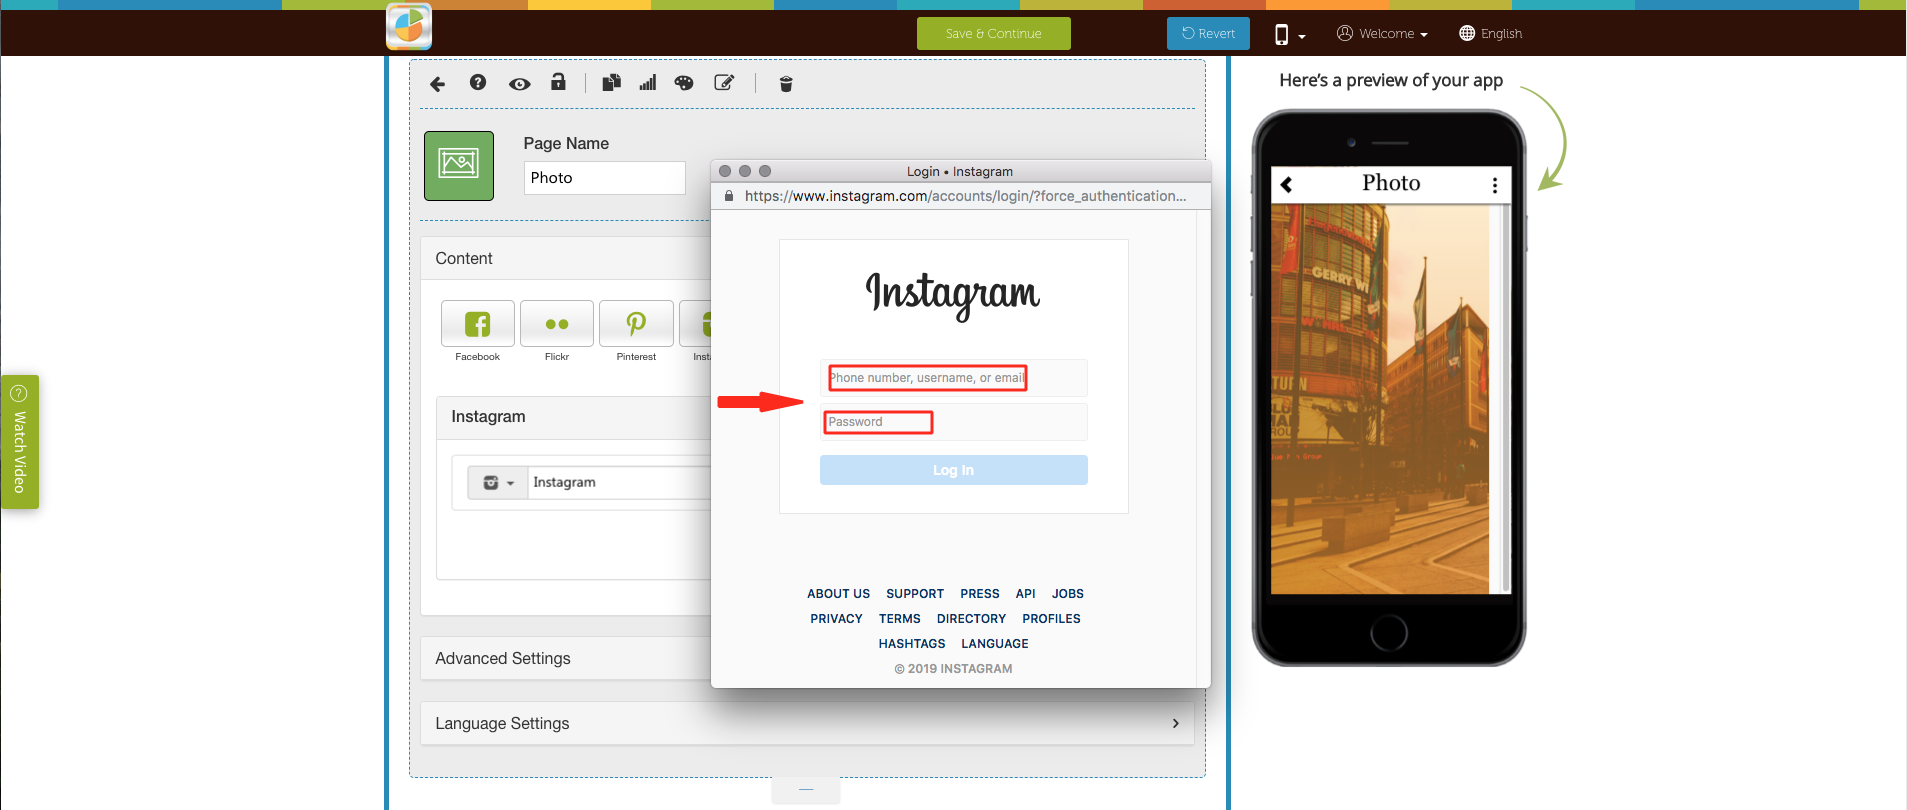 How Can I add My Instagram Profile to My App